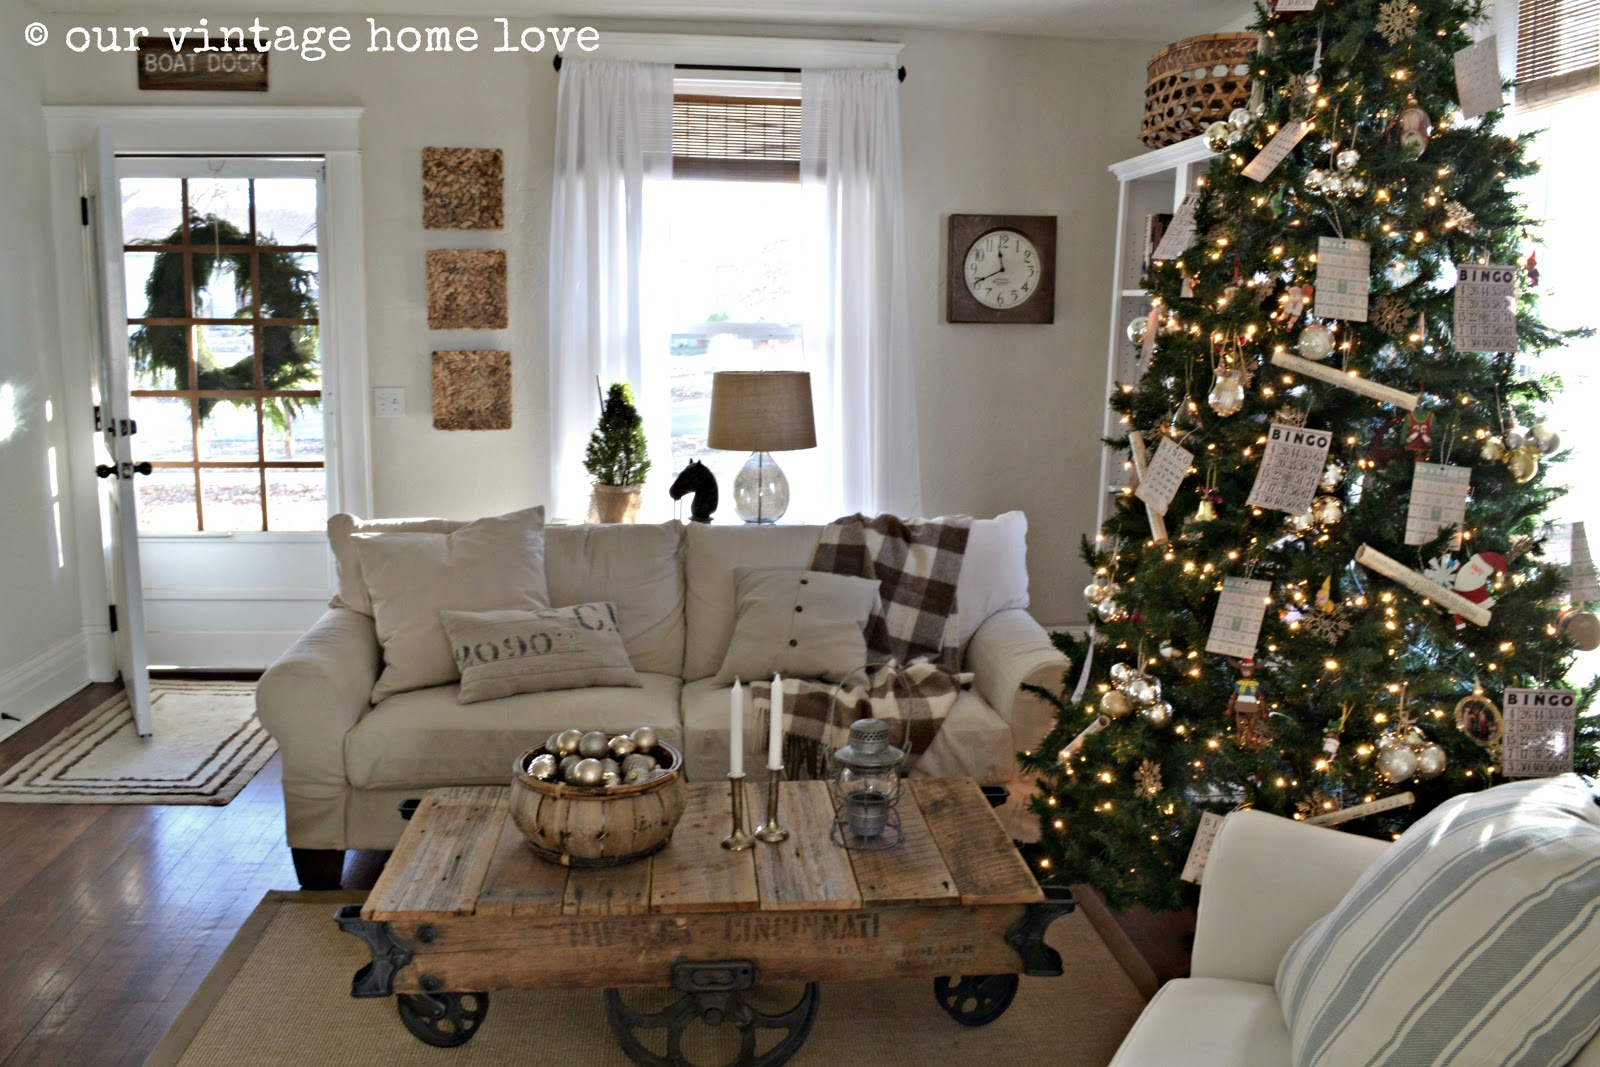 Our vintage home love 2012 christmas decor ideas for Home decor ideas